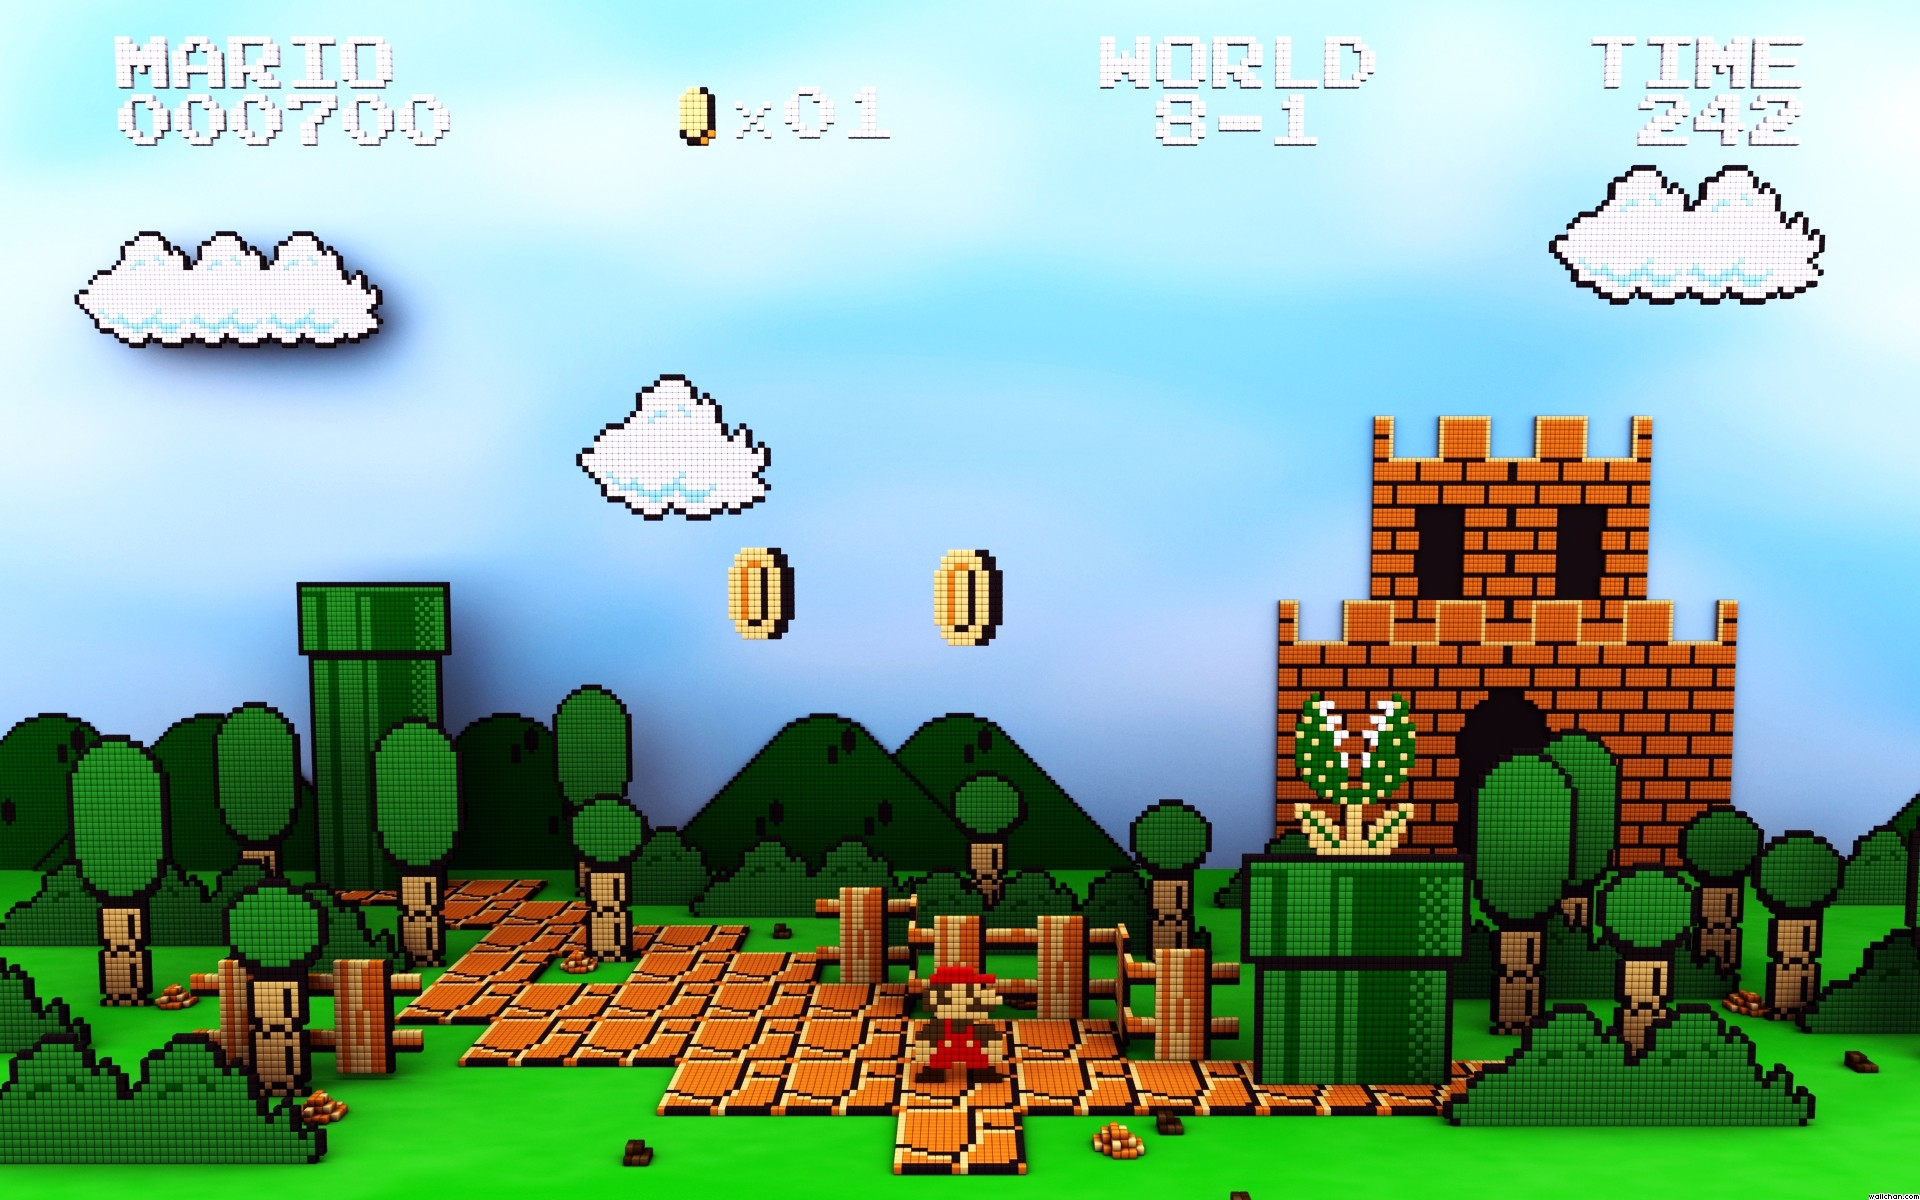 super mario bros live wallpaper kamos wallpaper